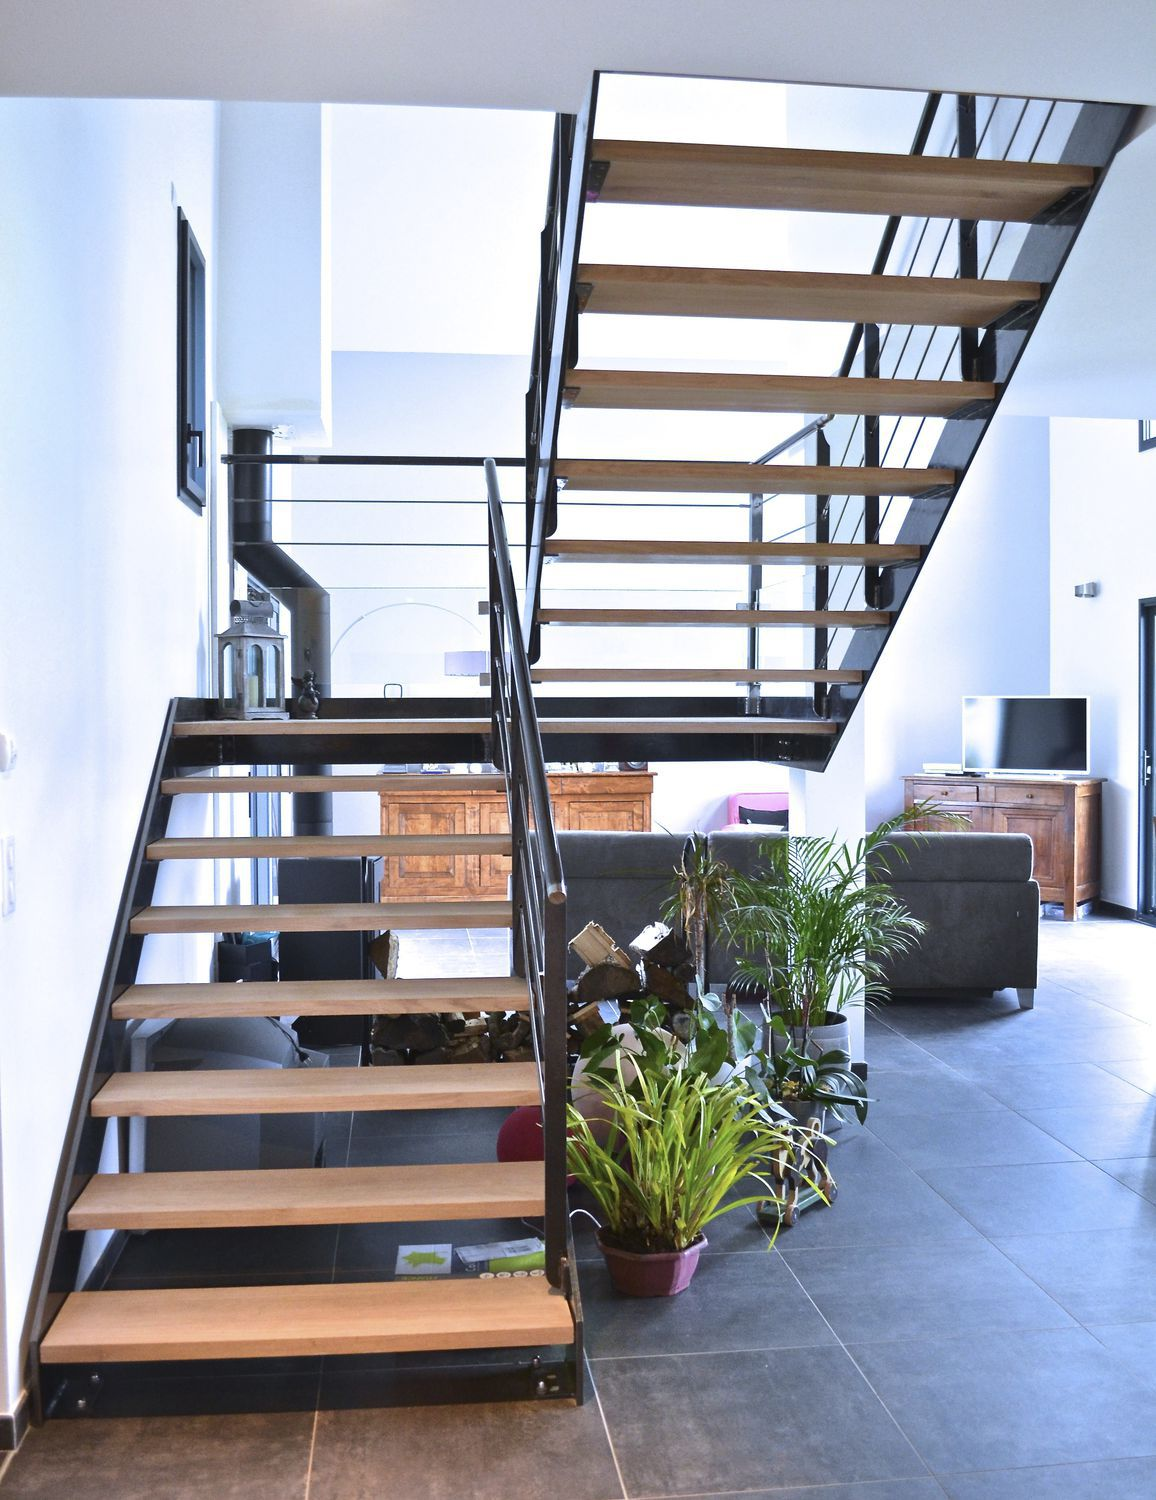 Escalier Acier Brut Half Turn Staircase Metal Frame Wooden Steps Without Risers